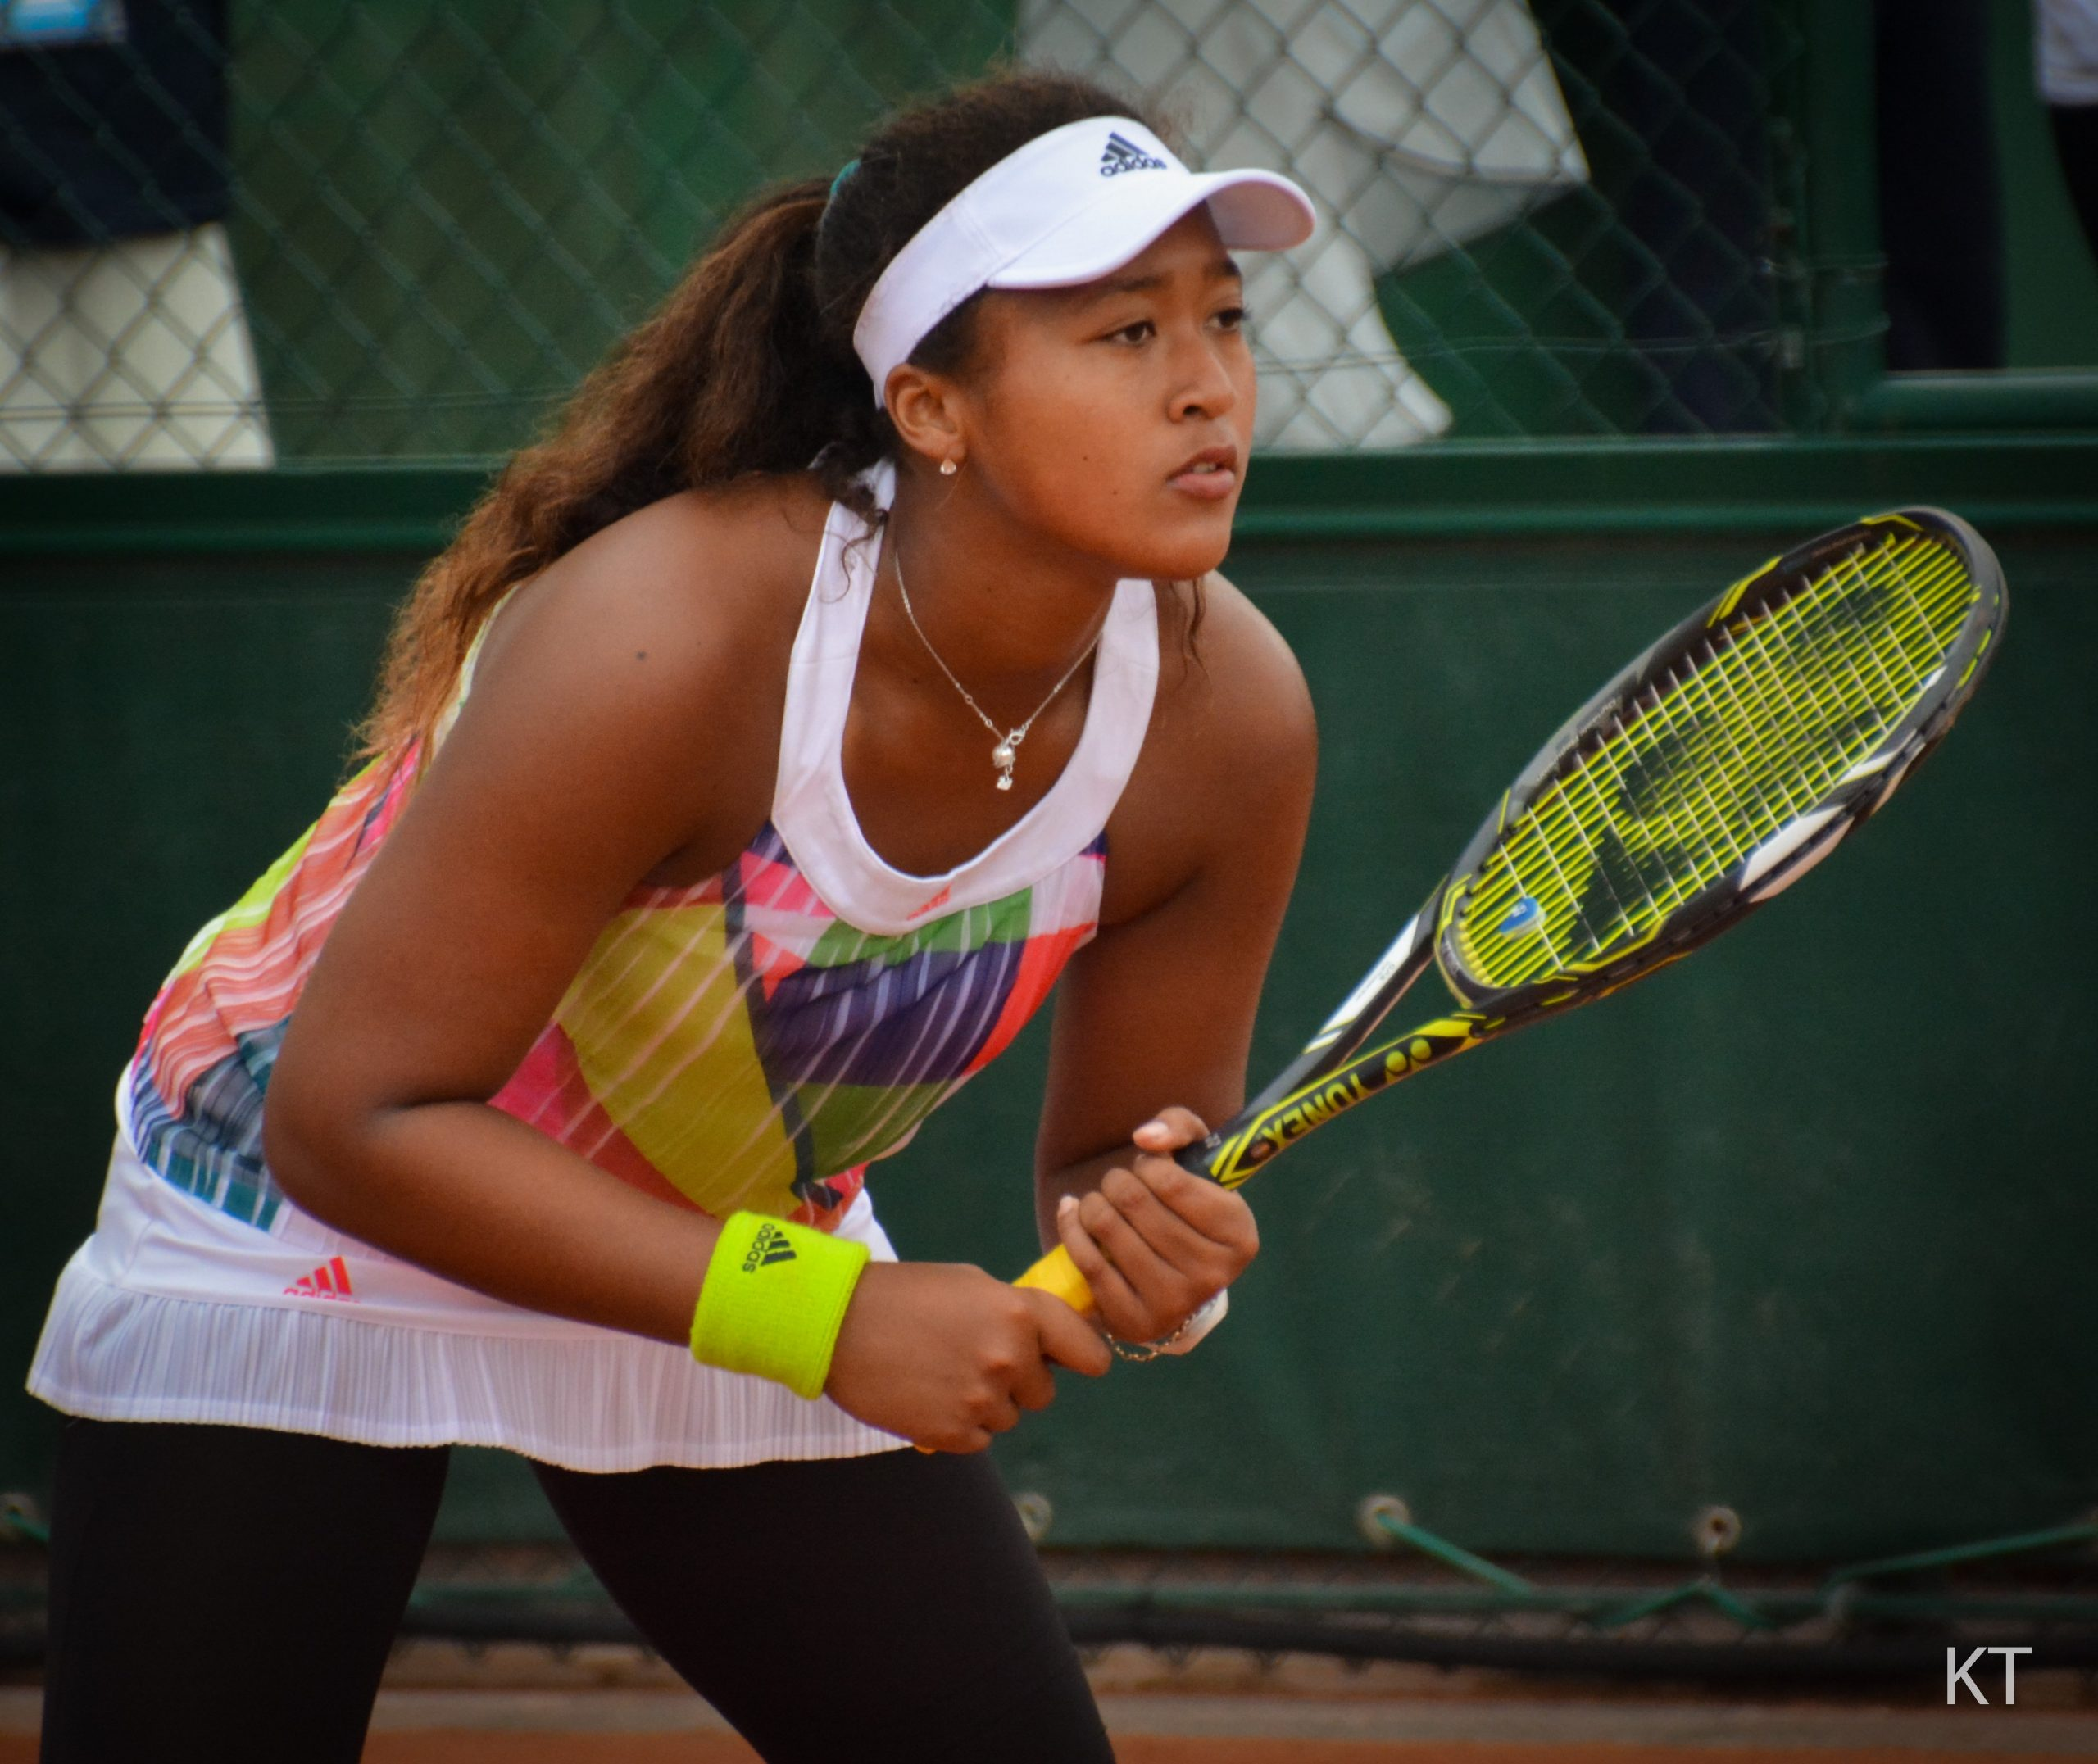 Naomi Osaka, wearing a white visor and colorful shirt, stands reads to hit a tennis ball